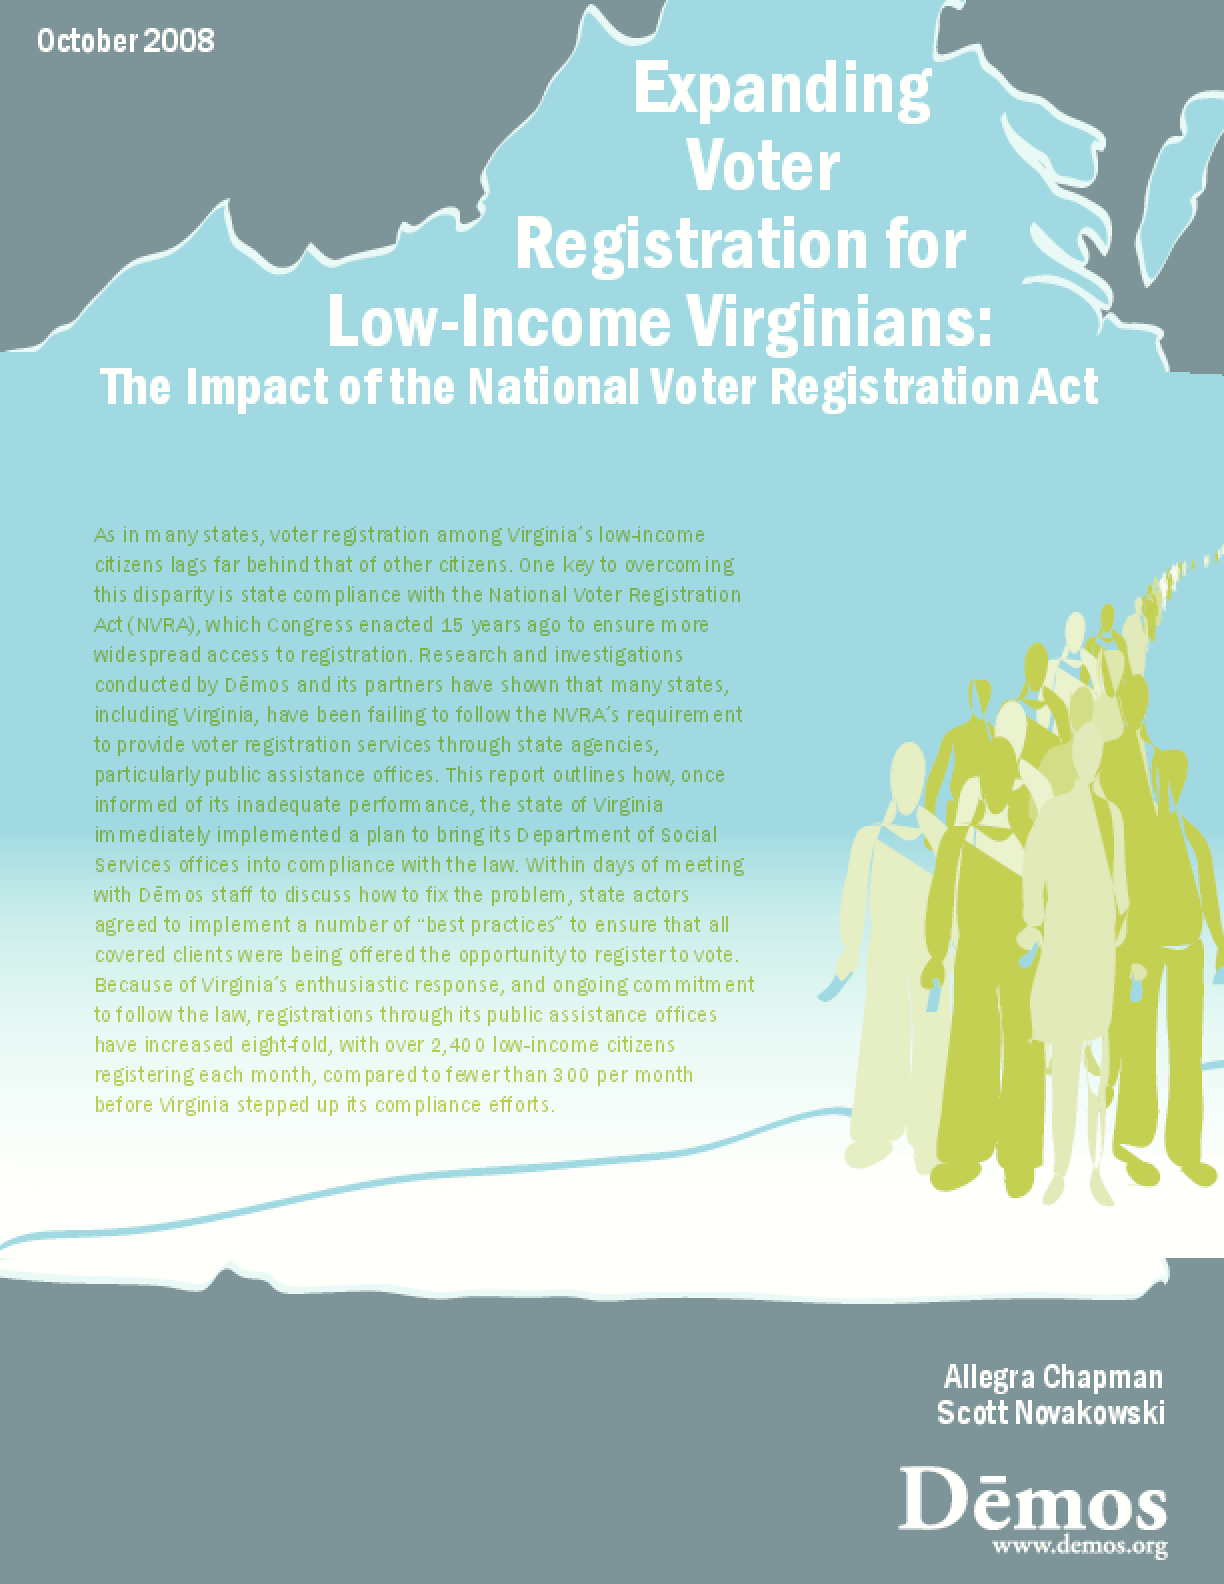 Expanding Voter Registration for Low-Income Virginians: The Impact of the National Voter Registration Act